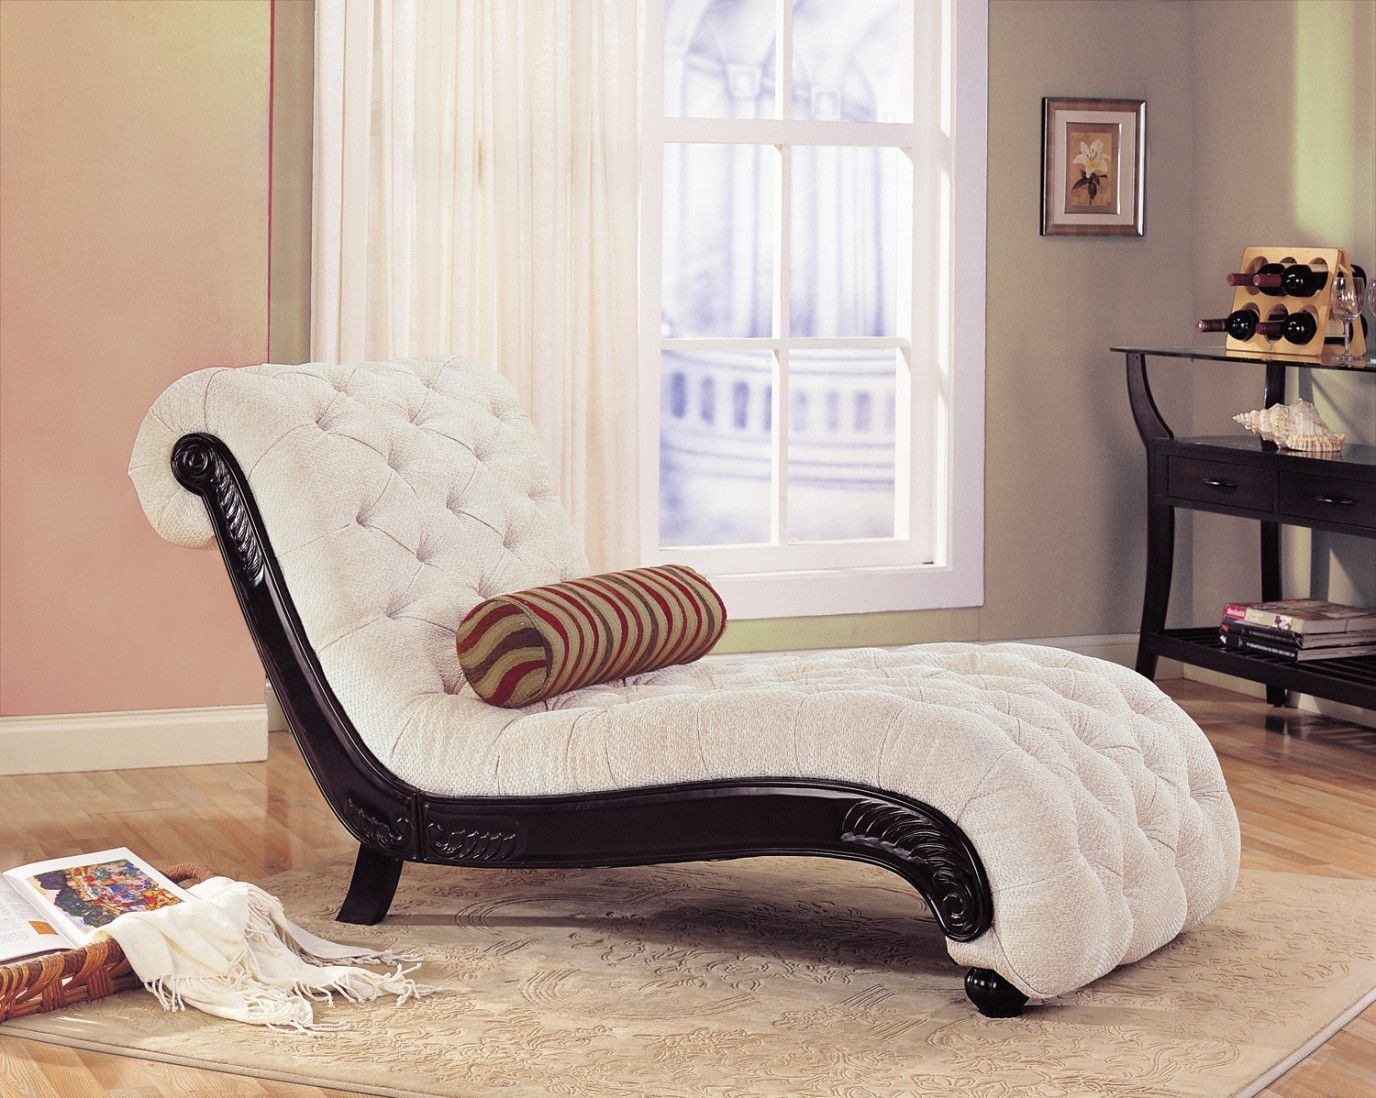 78 chaise lounge chairs for bedroom simple interior design for rh pinterest com